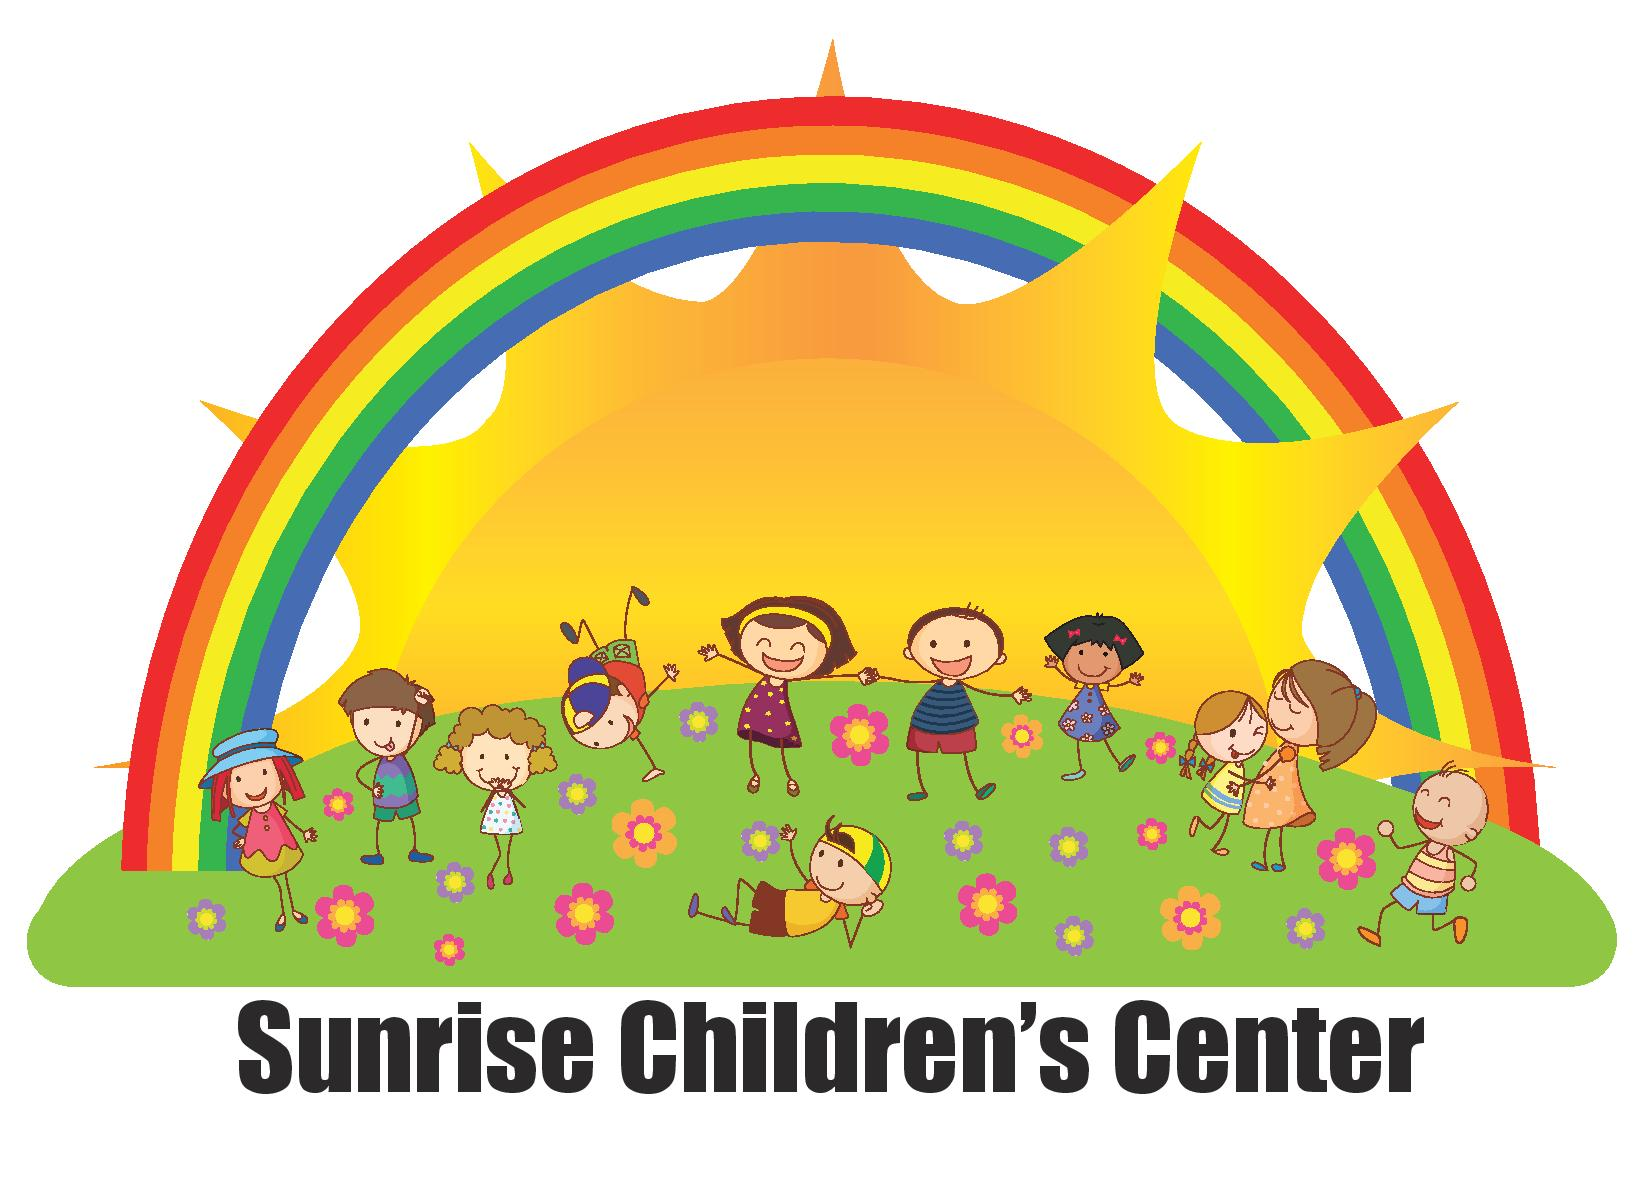 SUNRISE CHILDREN'S CENTER